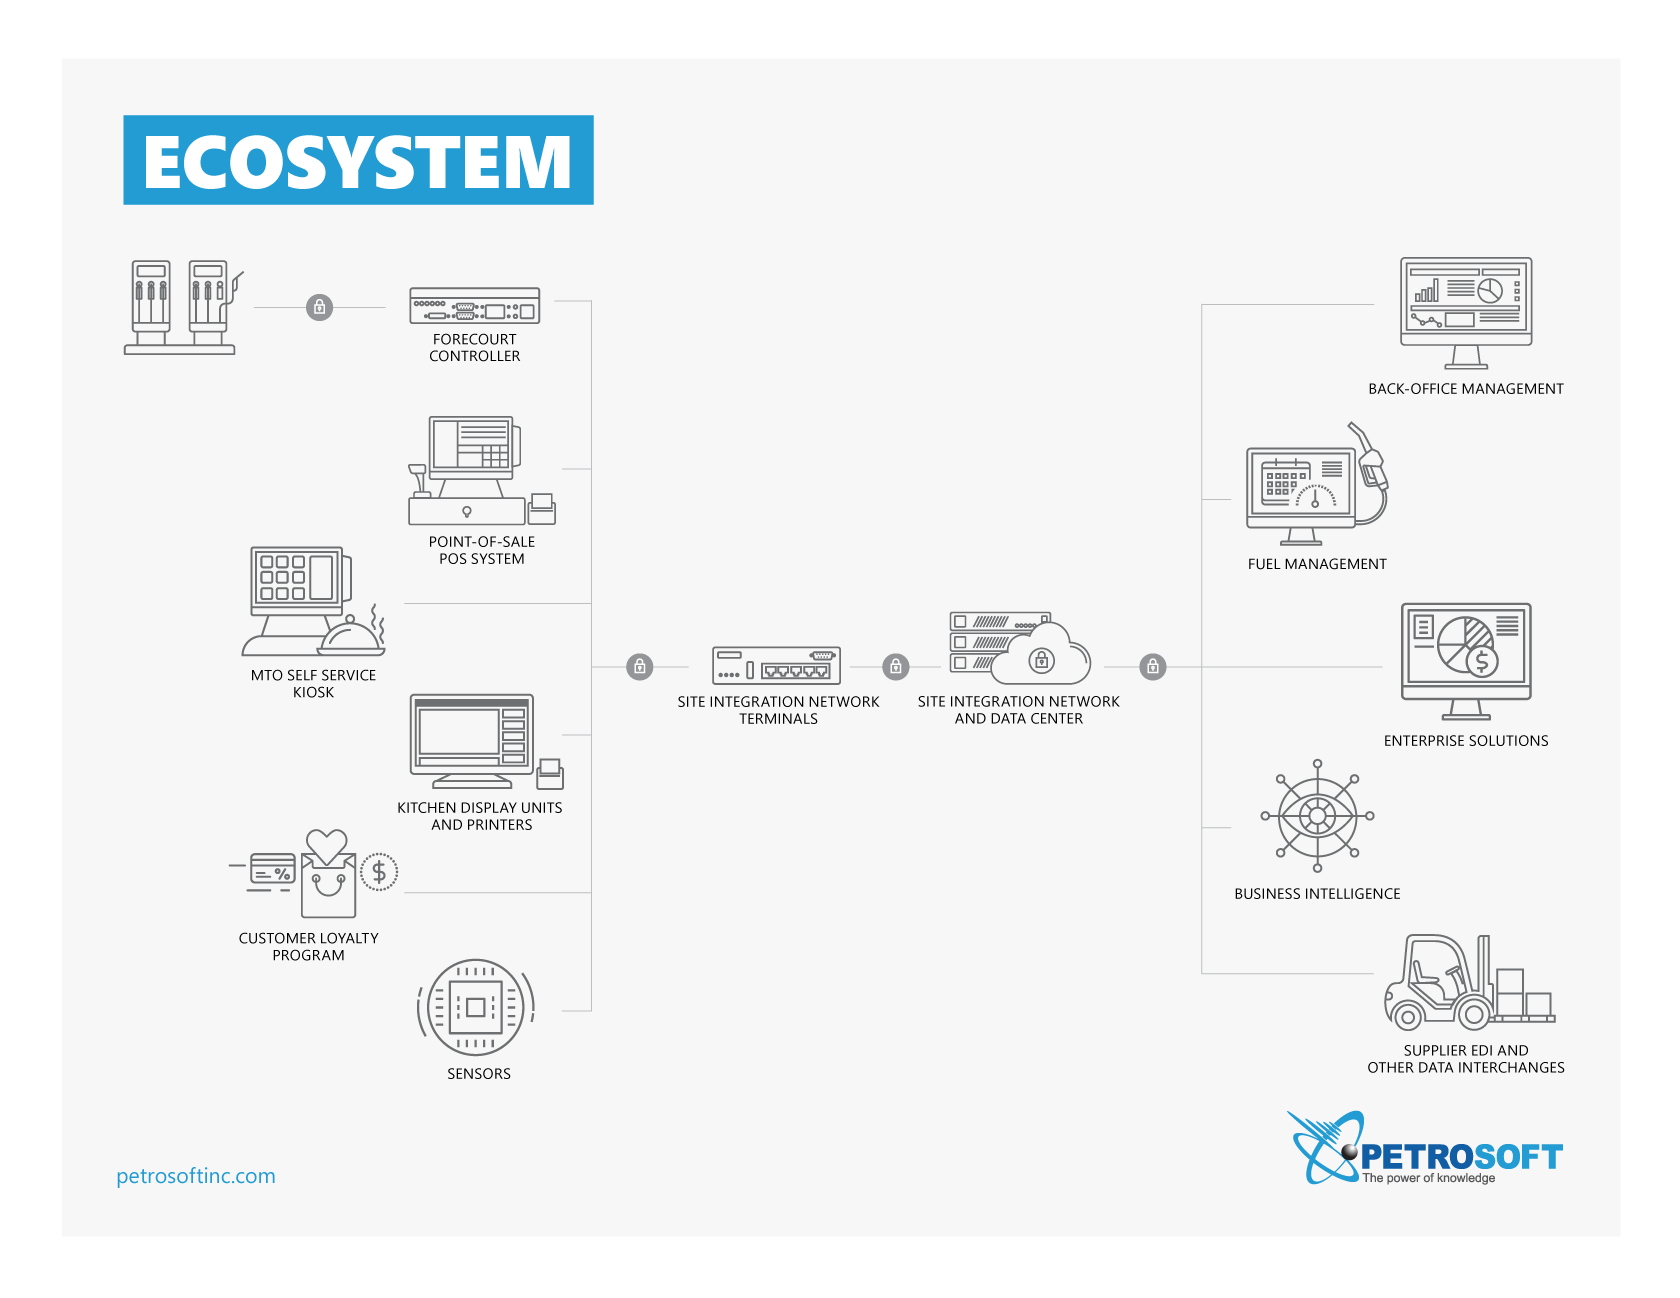 Diagram of the Retail and Downstream Petroleum Industry Ecosystem with Petrosoft's Site Integration Network